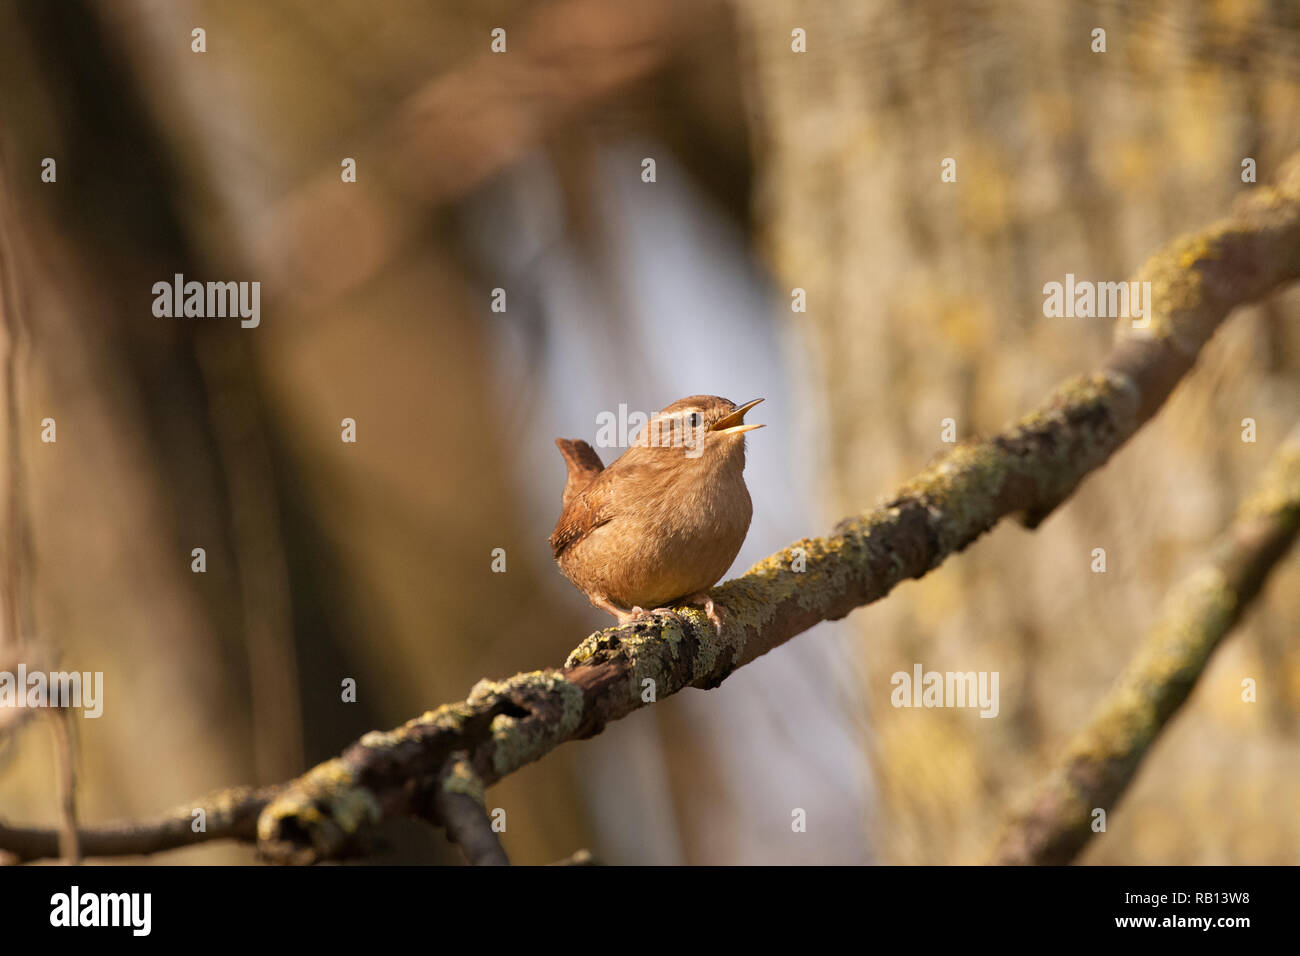 European Wren,Troglodytes troglodytes, singing from branch, Hampstead Heath, London, United Kingdom Stock Photo